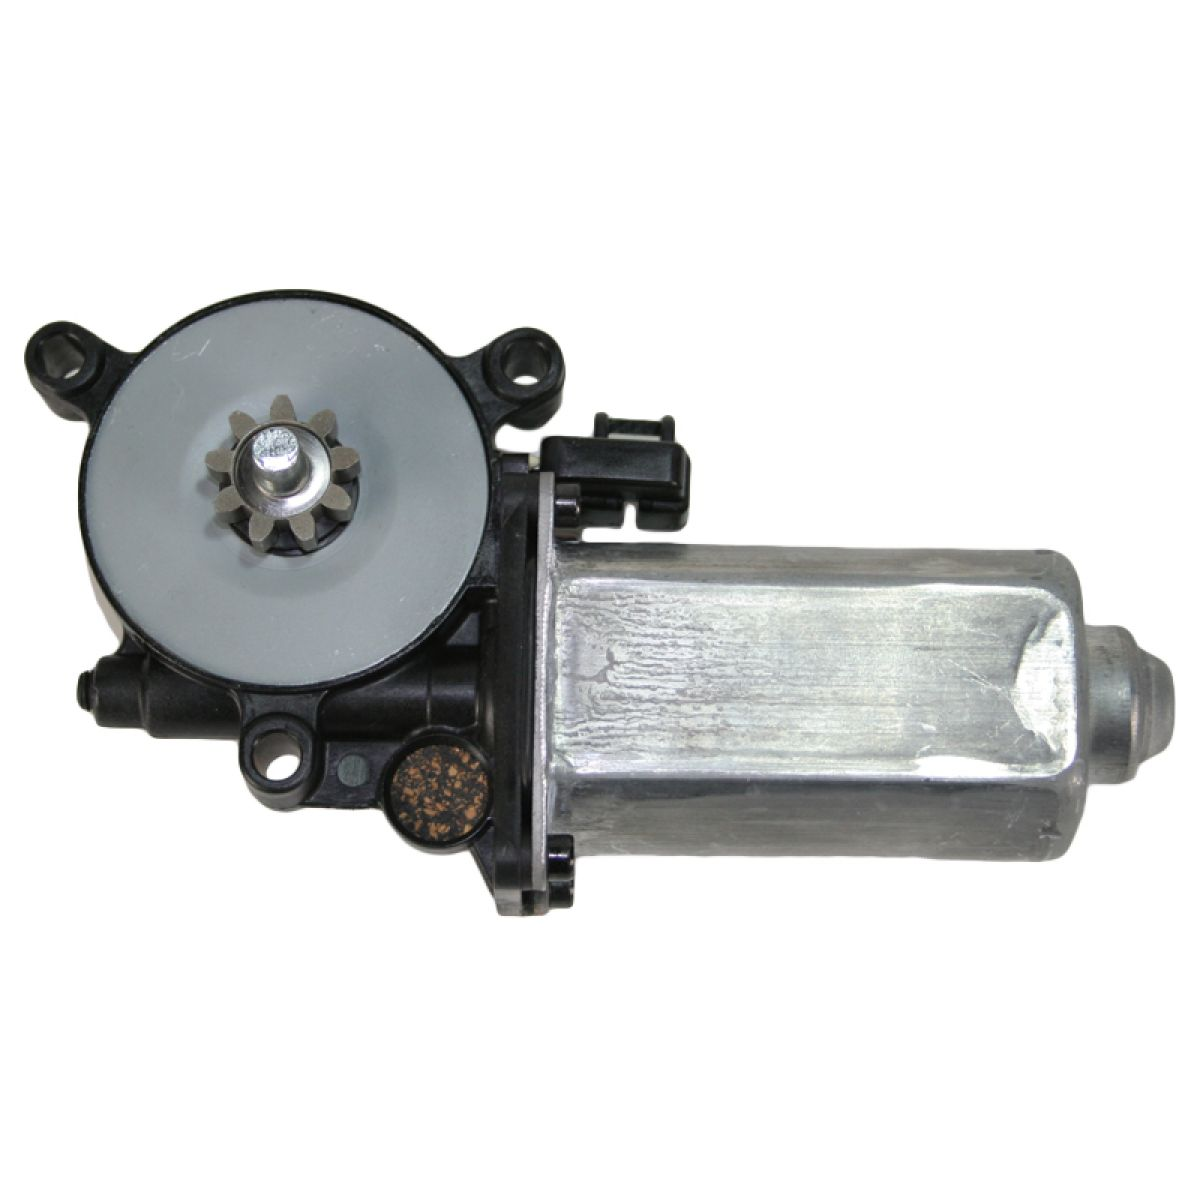 Power Window Lift Motor 22143946 For Pontiac Buick Cadillac 1992 Oldsmobile 88 Royale Parts Bonneville Olds